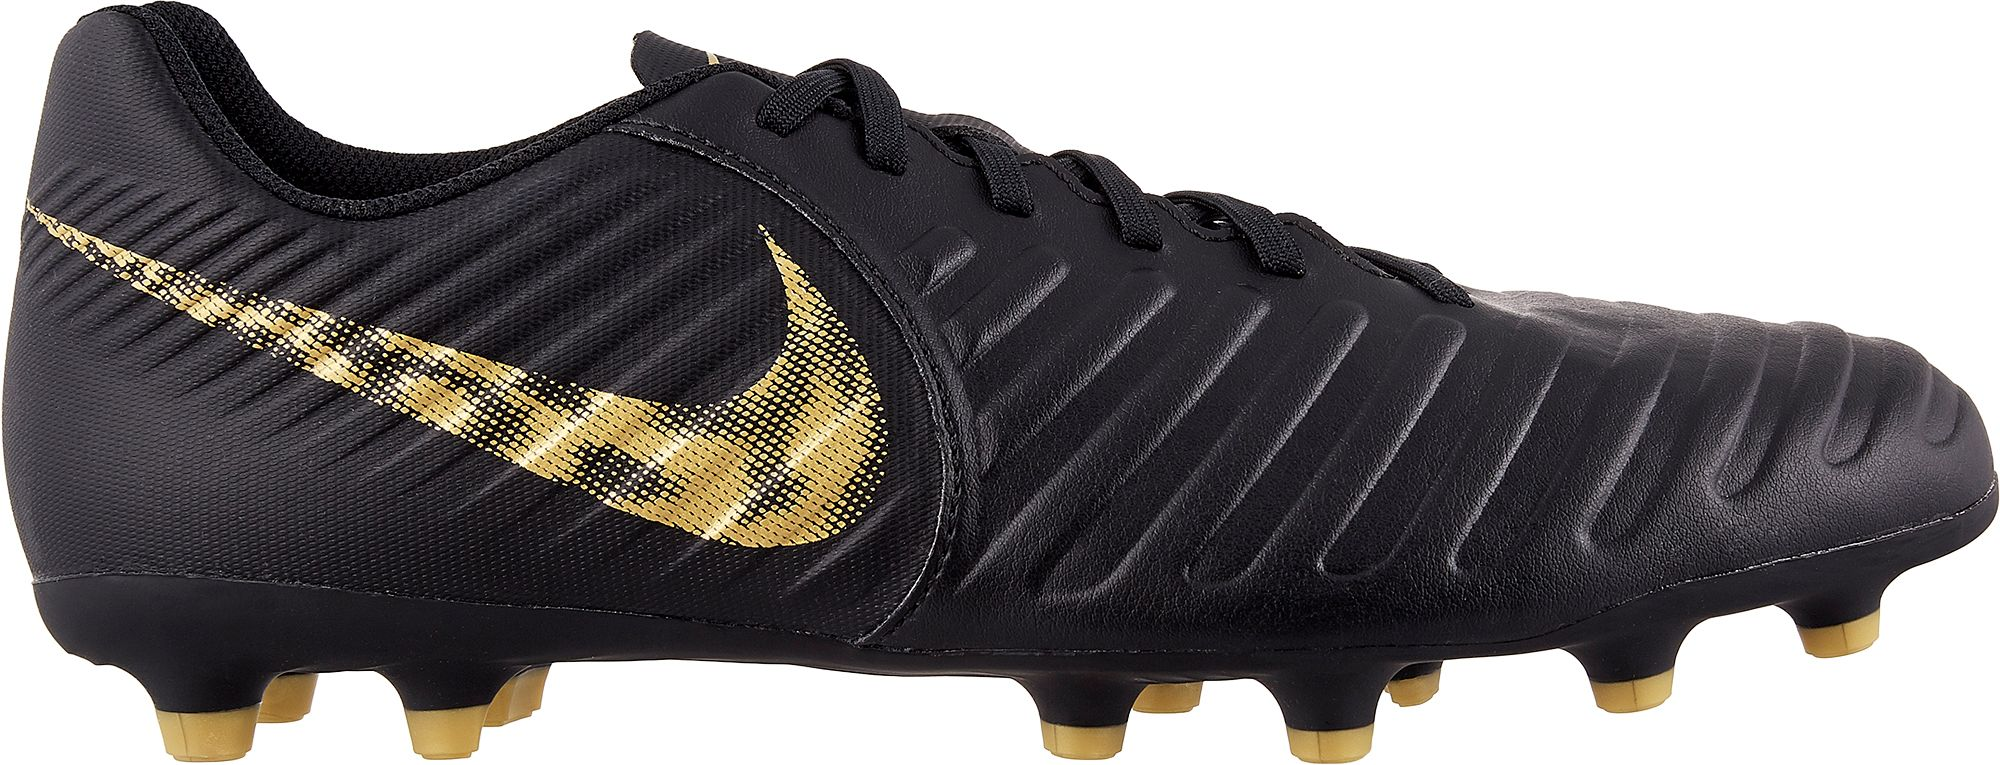 los angeles 20af2 48460 Nike Tiempo Legend 7 Club FG Soccer Cleats | DICK'S Sporting ...